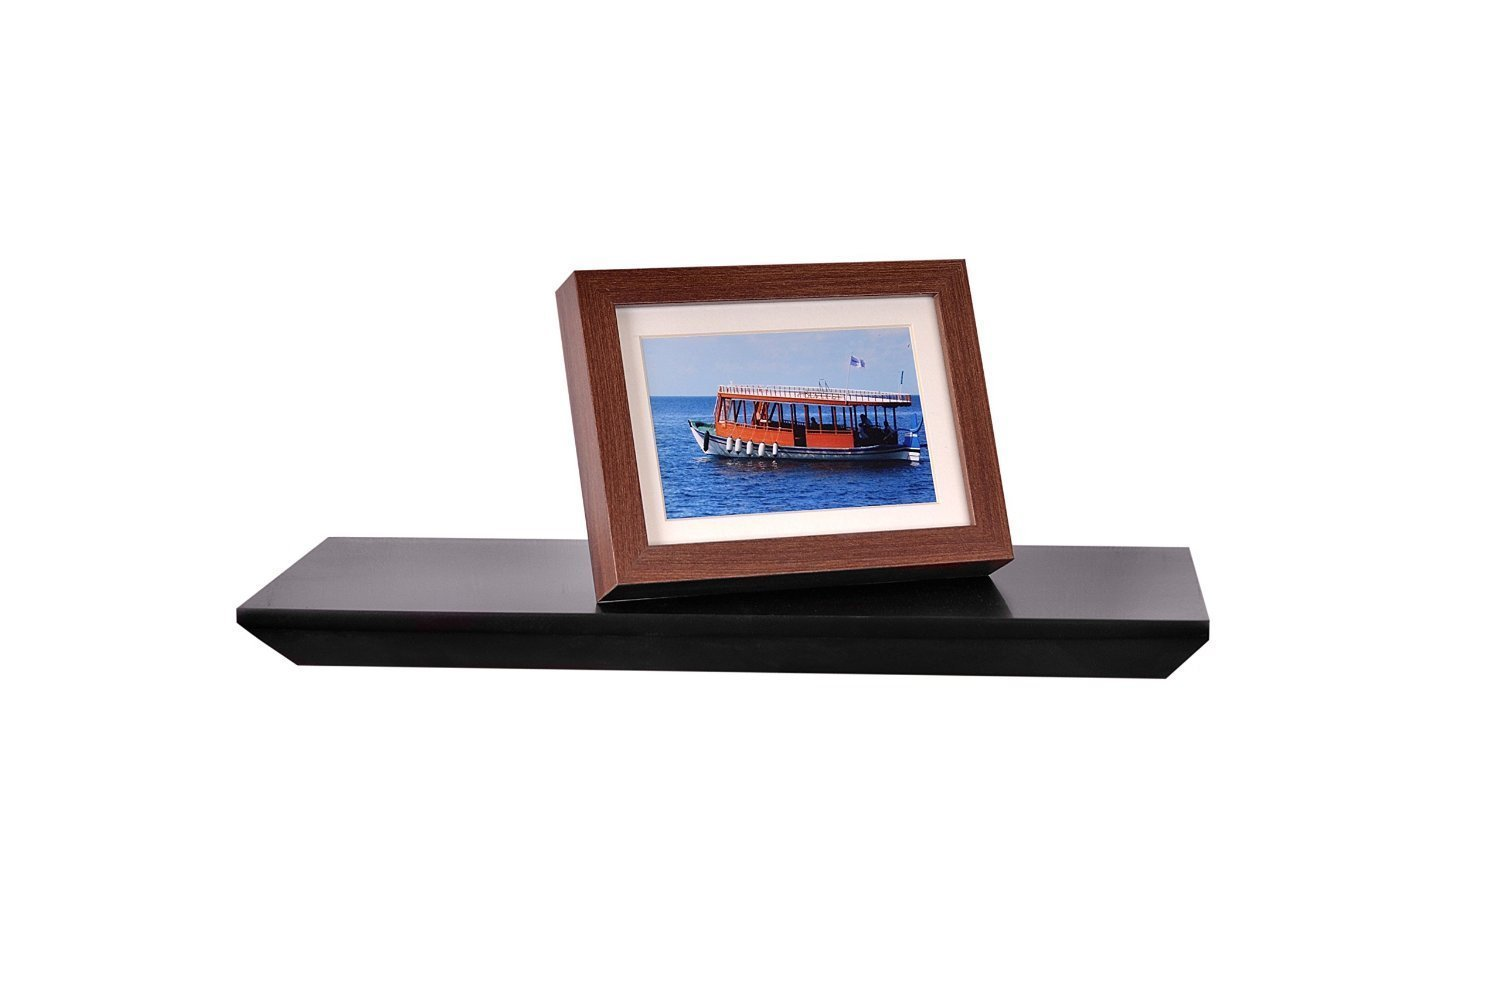 "WELLAND Painted Shelf, Floating Wall Shelf Ledge Shelf, 24"" x 8"" x 1.25"", Black"